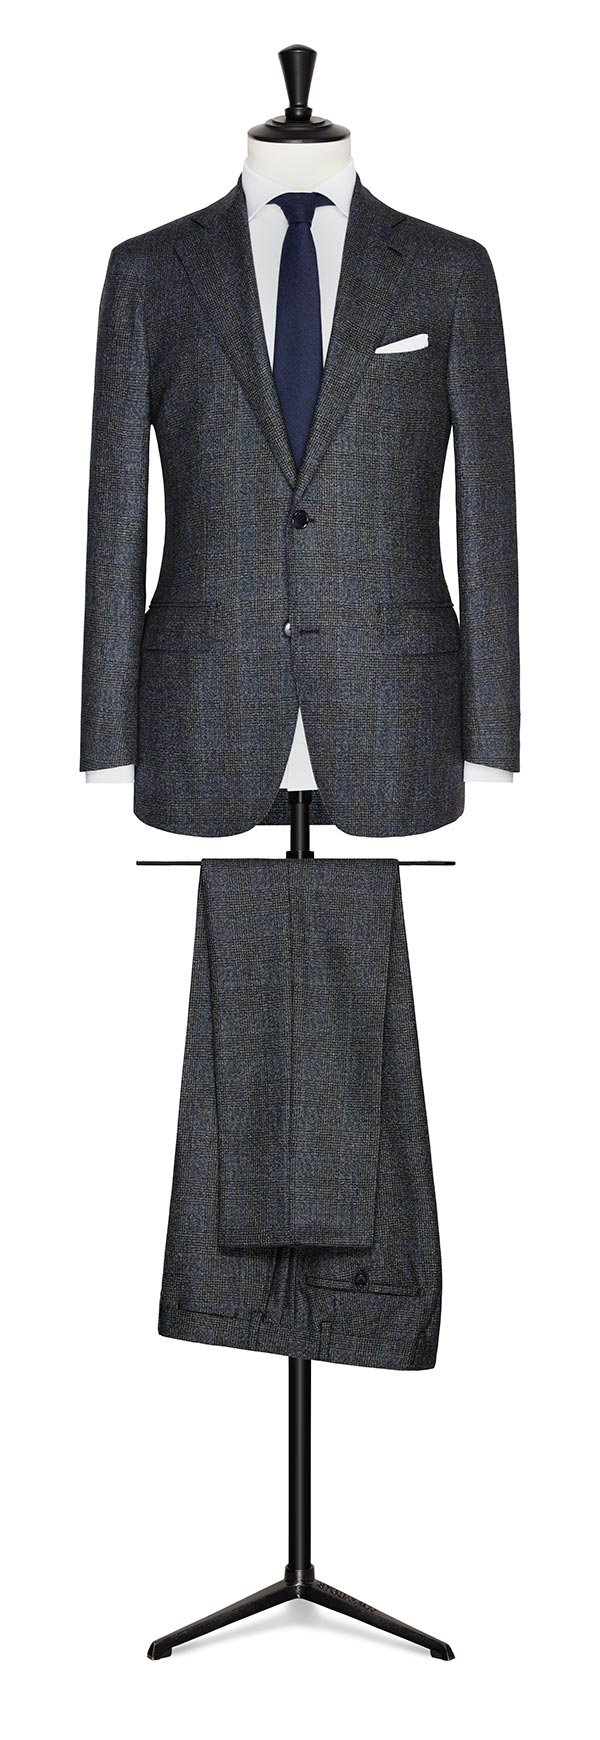 Maatpak Loro Piana - Dream Tweed 11